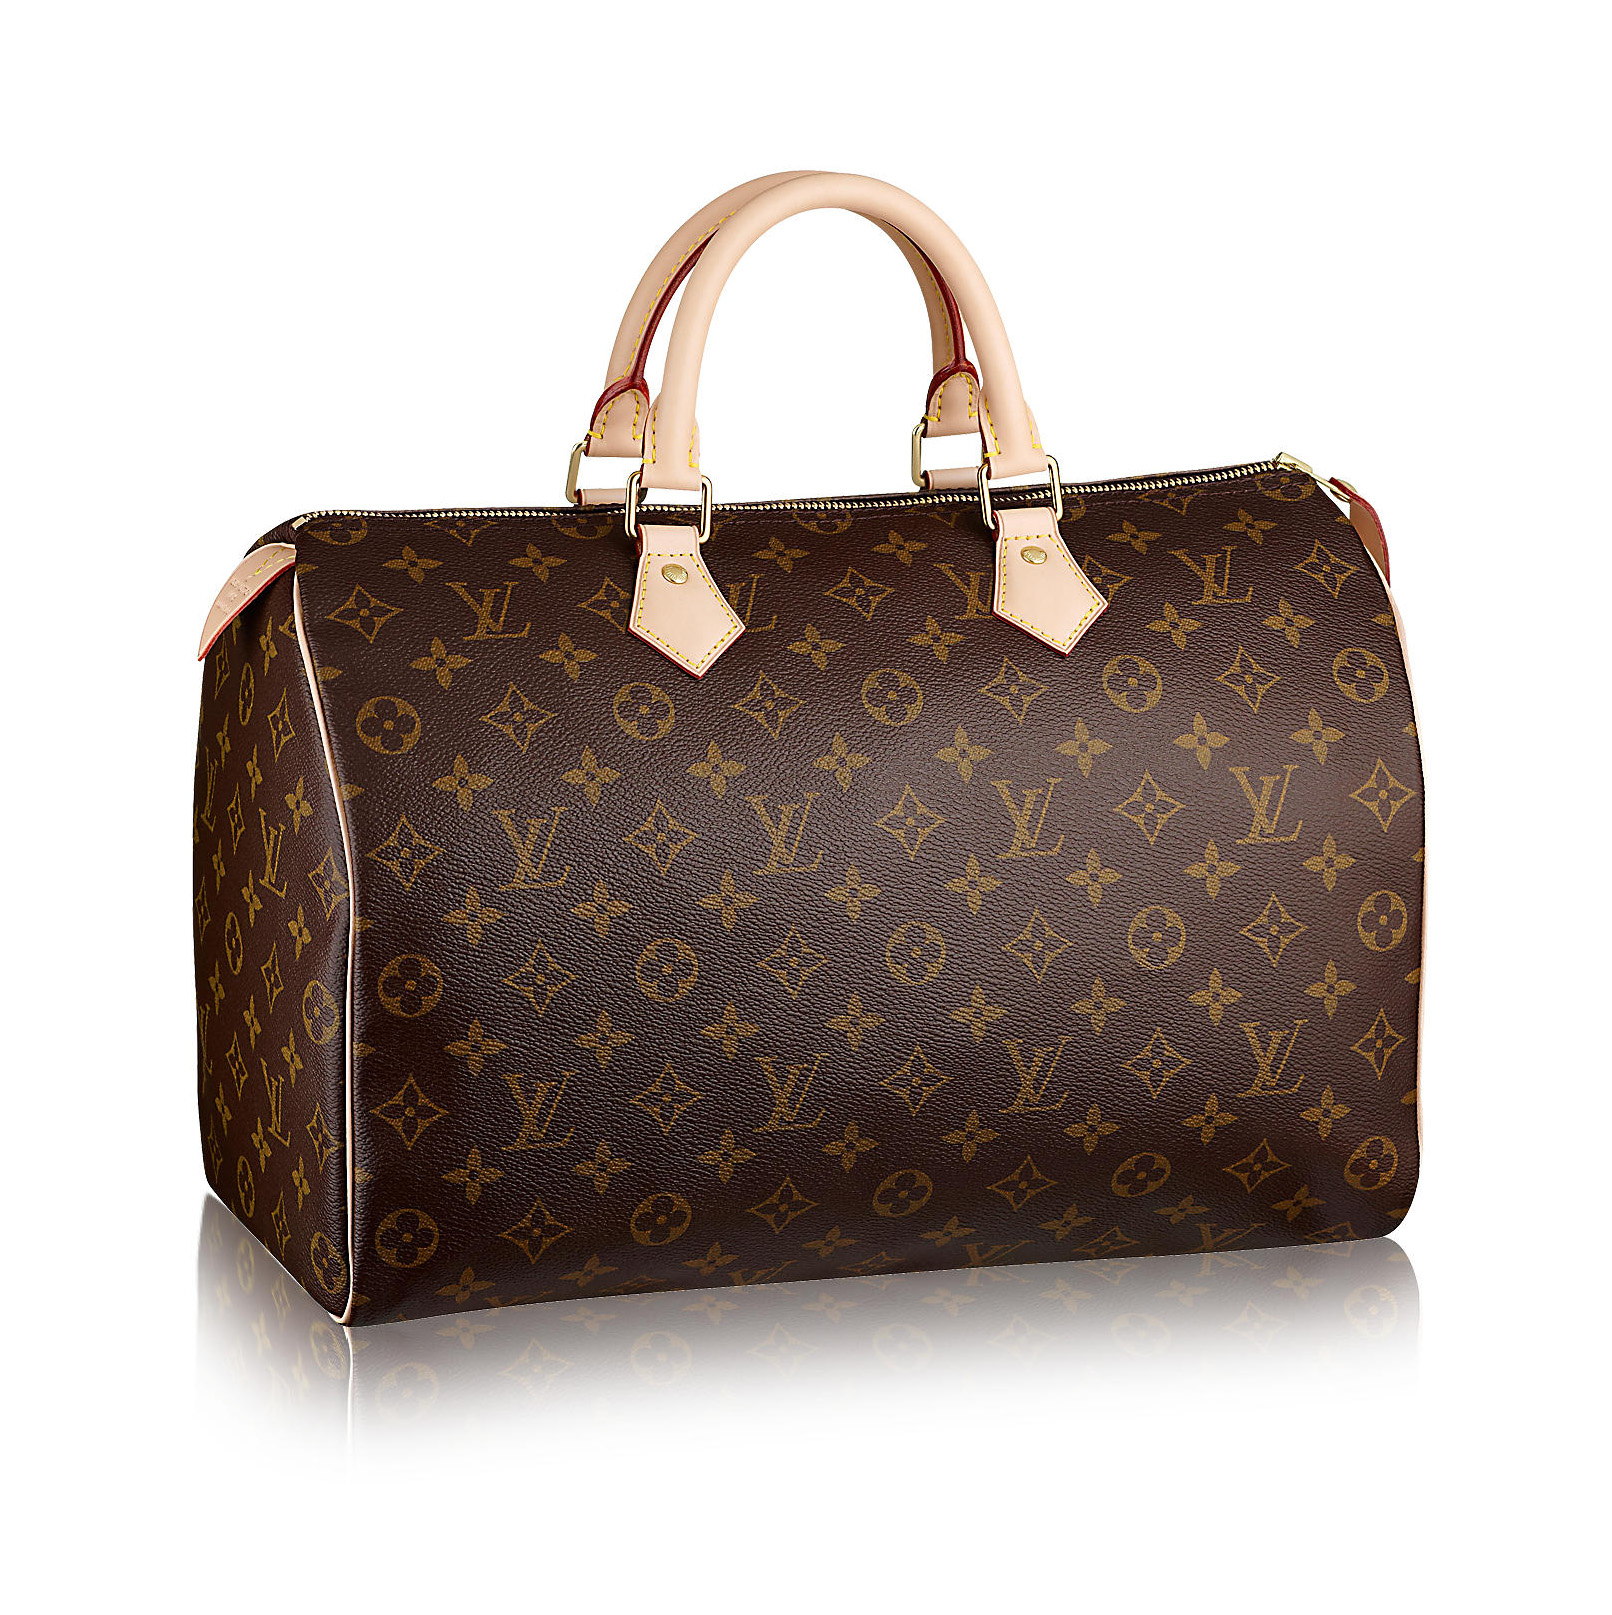 Ikonické kabelky – Louis Vuitton Speedy  9ab8eef56a7